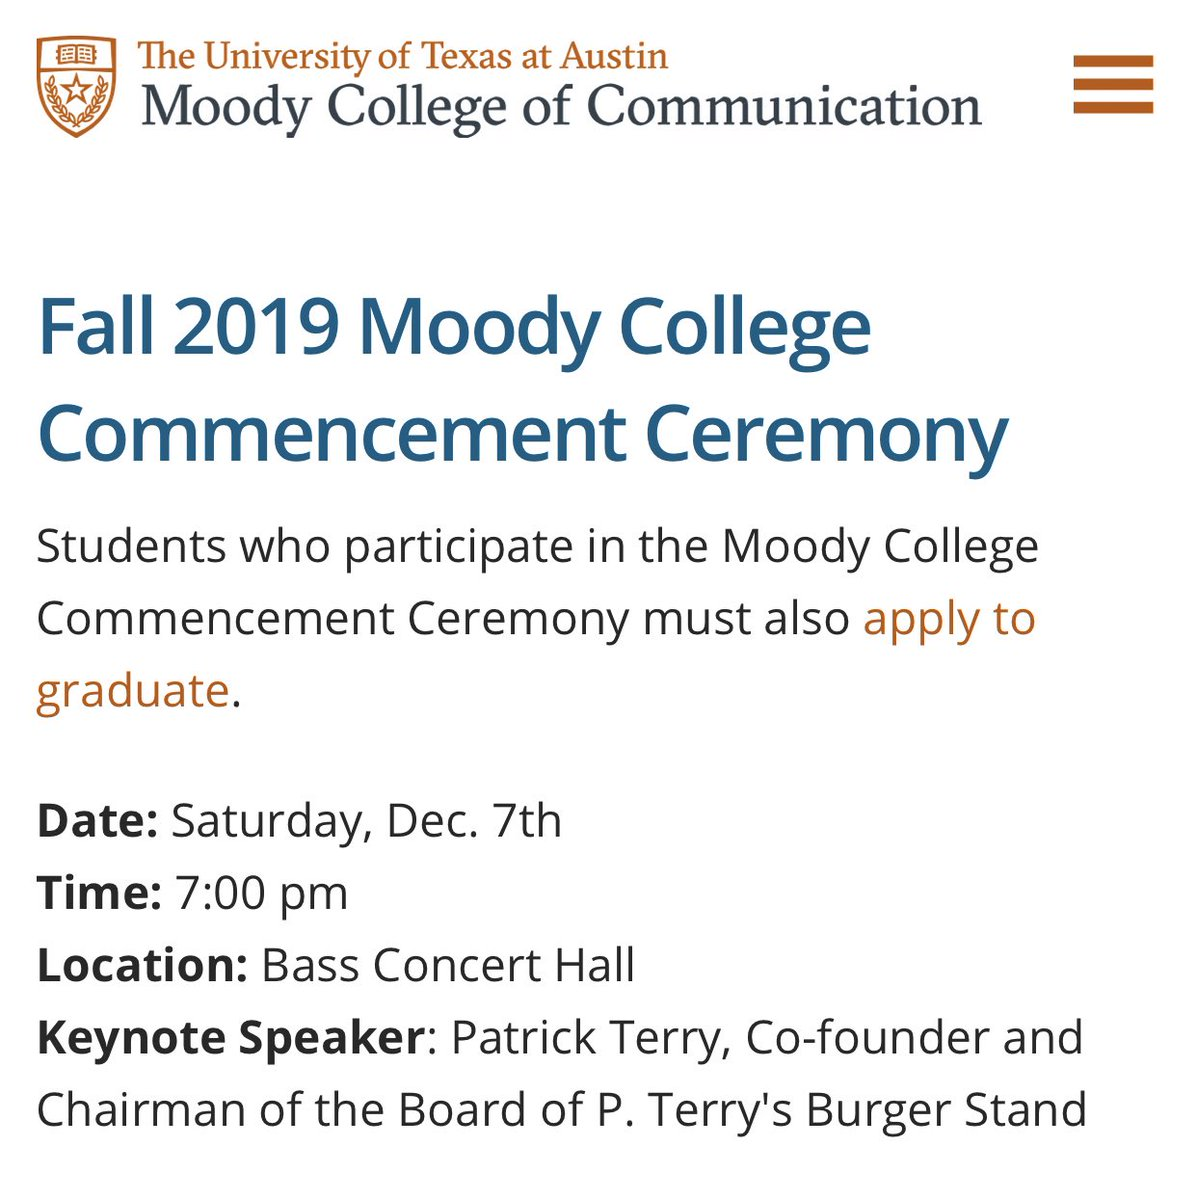 @michaelsheen , it's HAPPENING! I'm graduating on December 7th with my masters! I know you probably have other obligations, but you're invited! 🤘